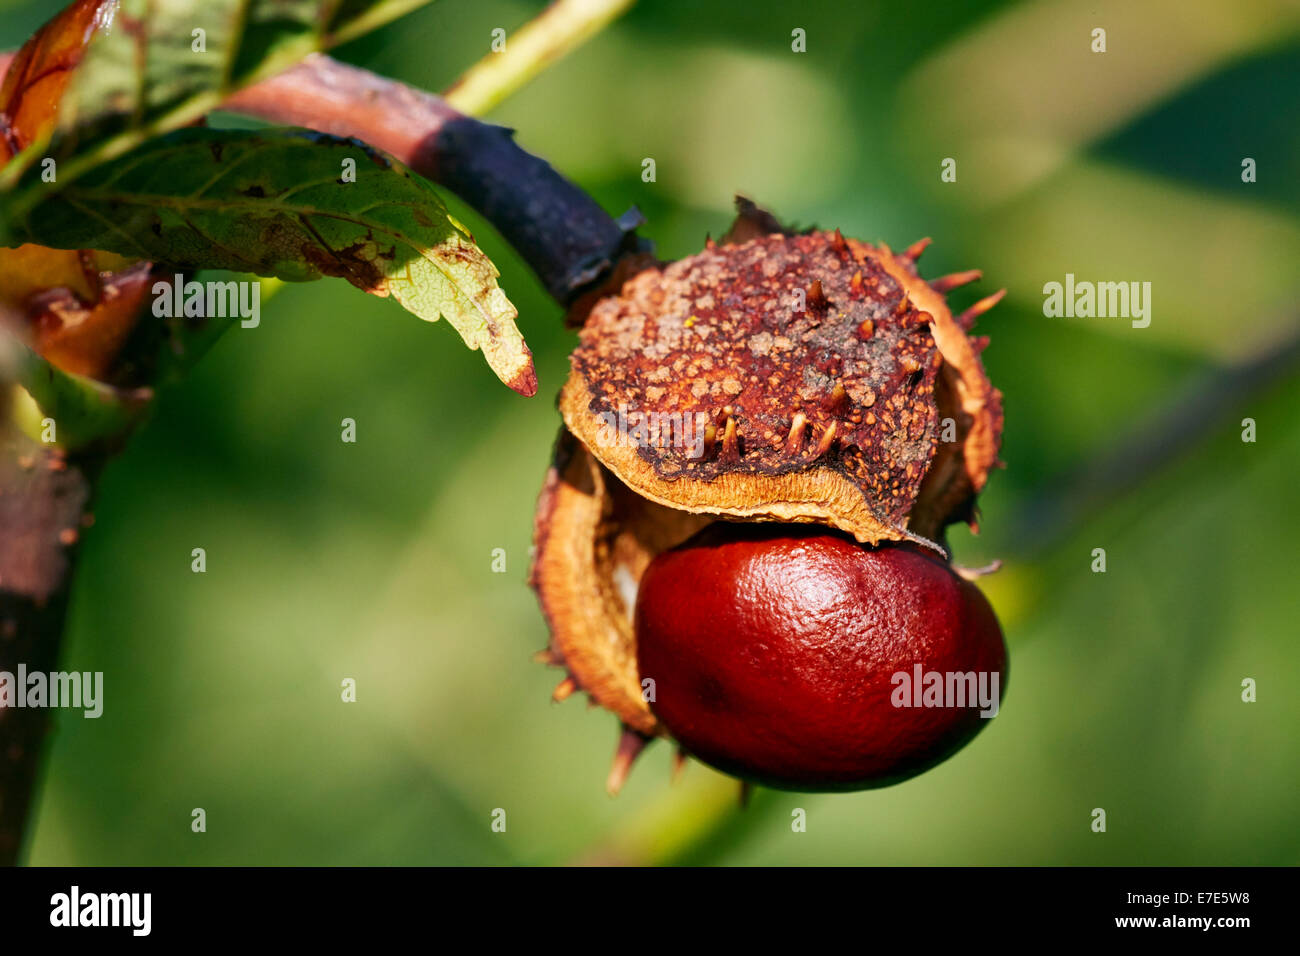 Horse Chestnut about to fall from its shell. Hurst Meadows, West Molesey, Surrey, England. - Stock Image